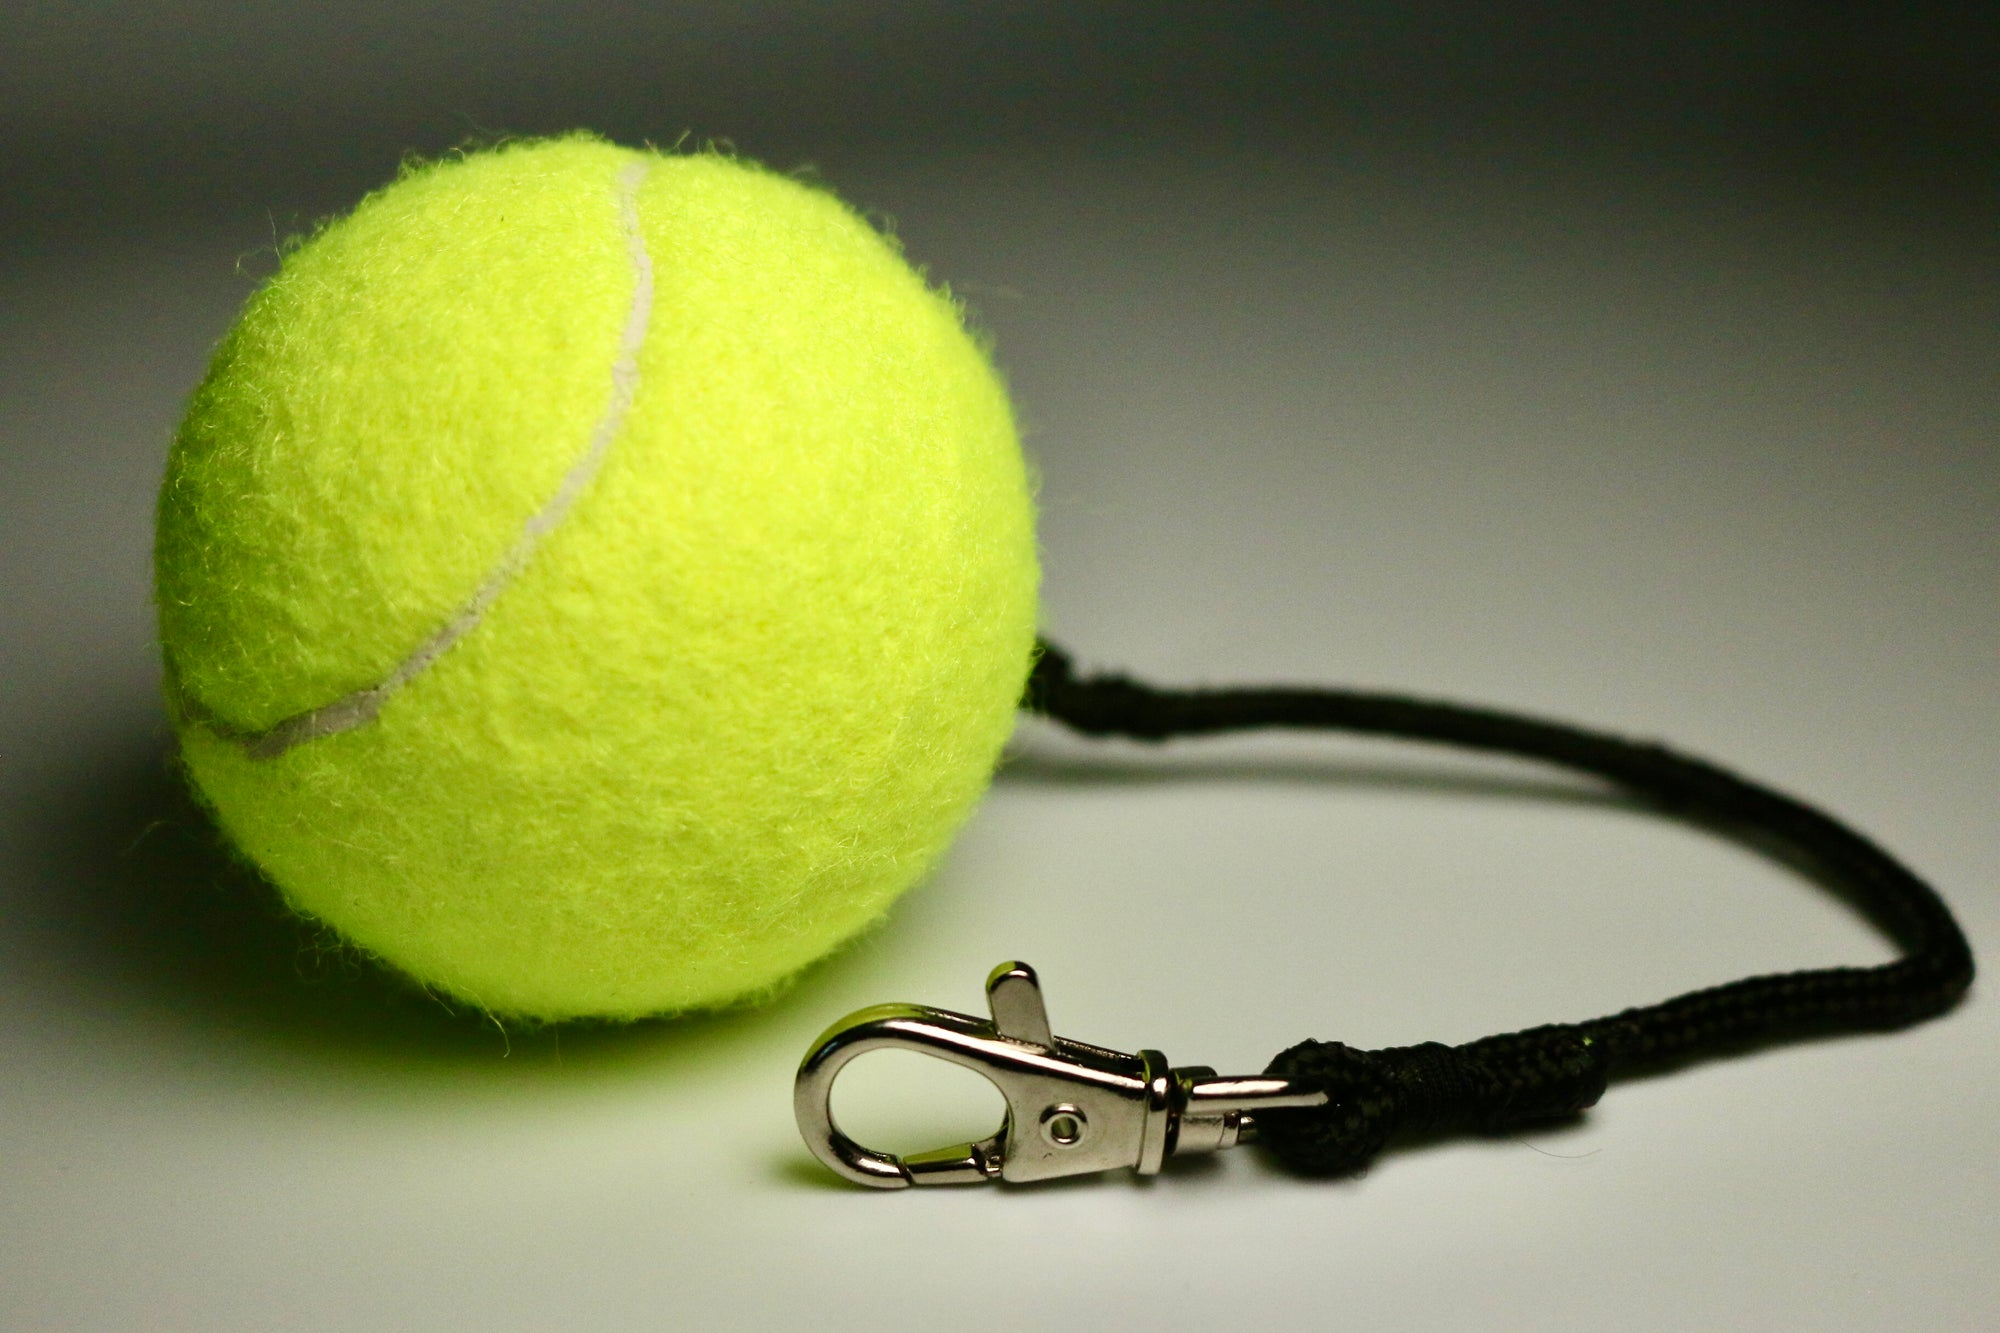 BallAlong: A tennis ball with a collar and leash rope attachment for Dogs